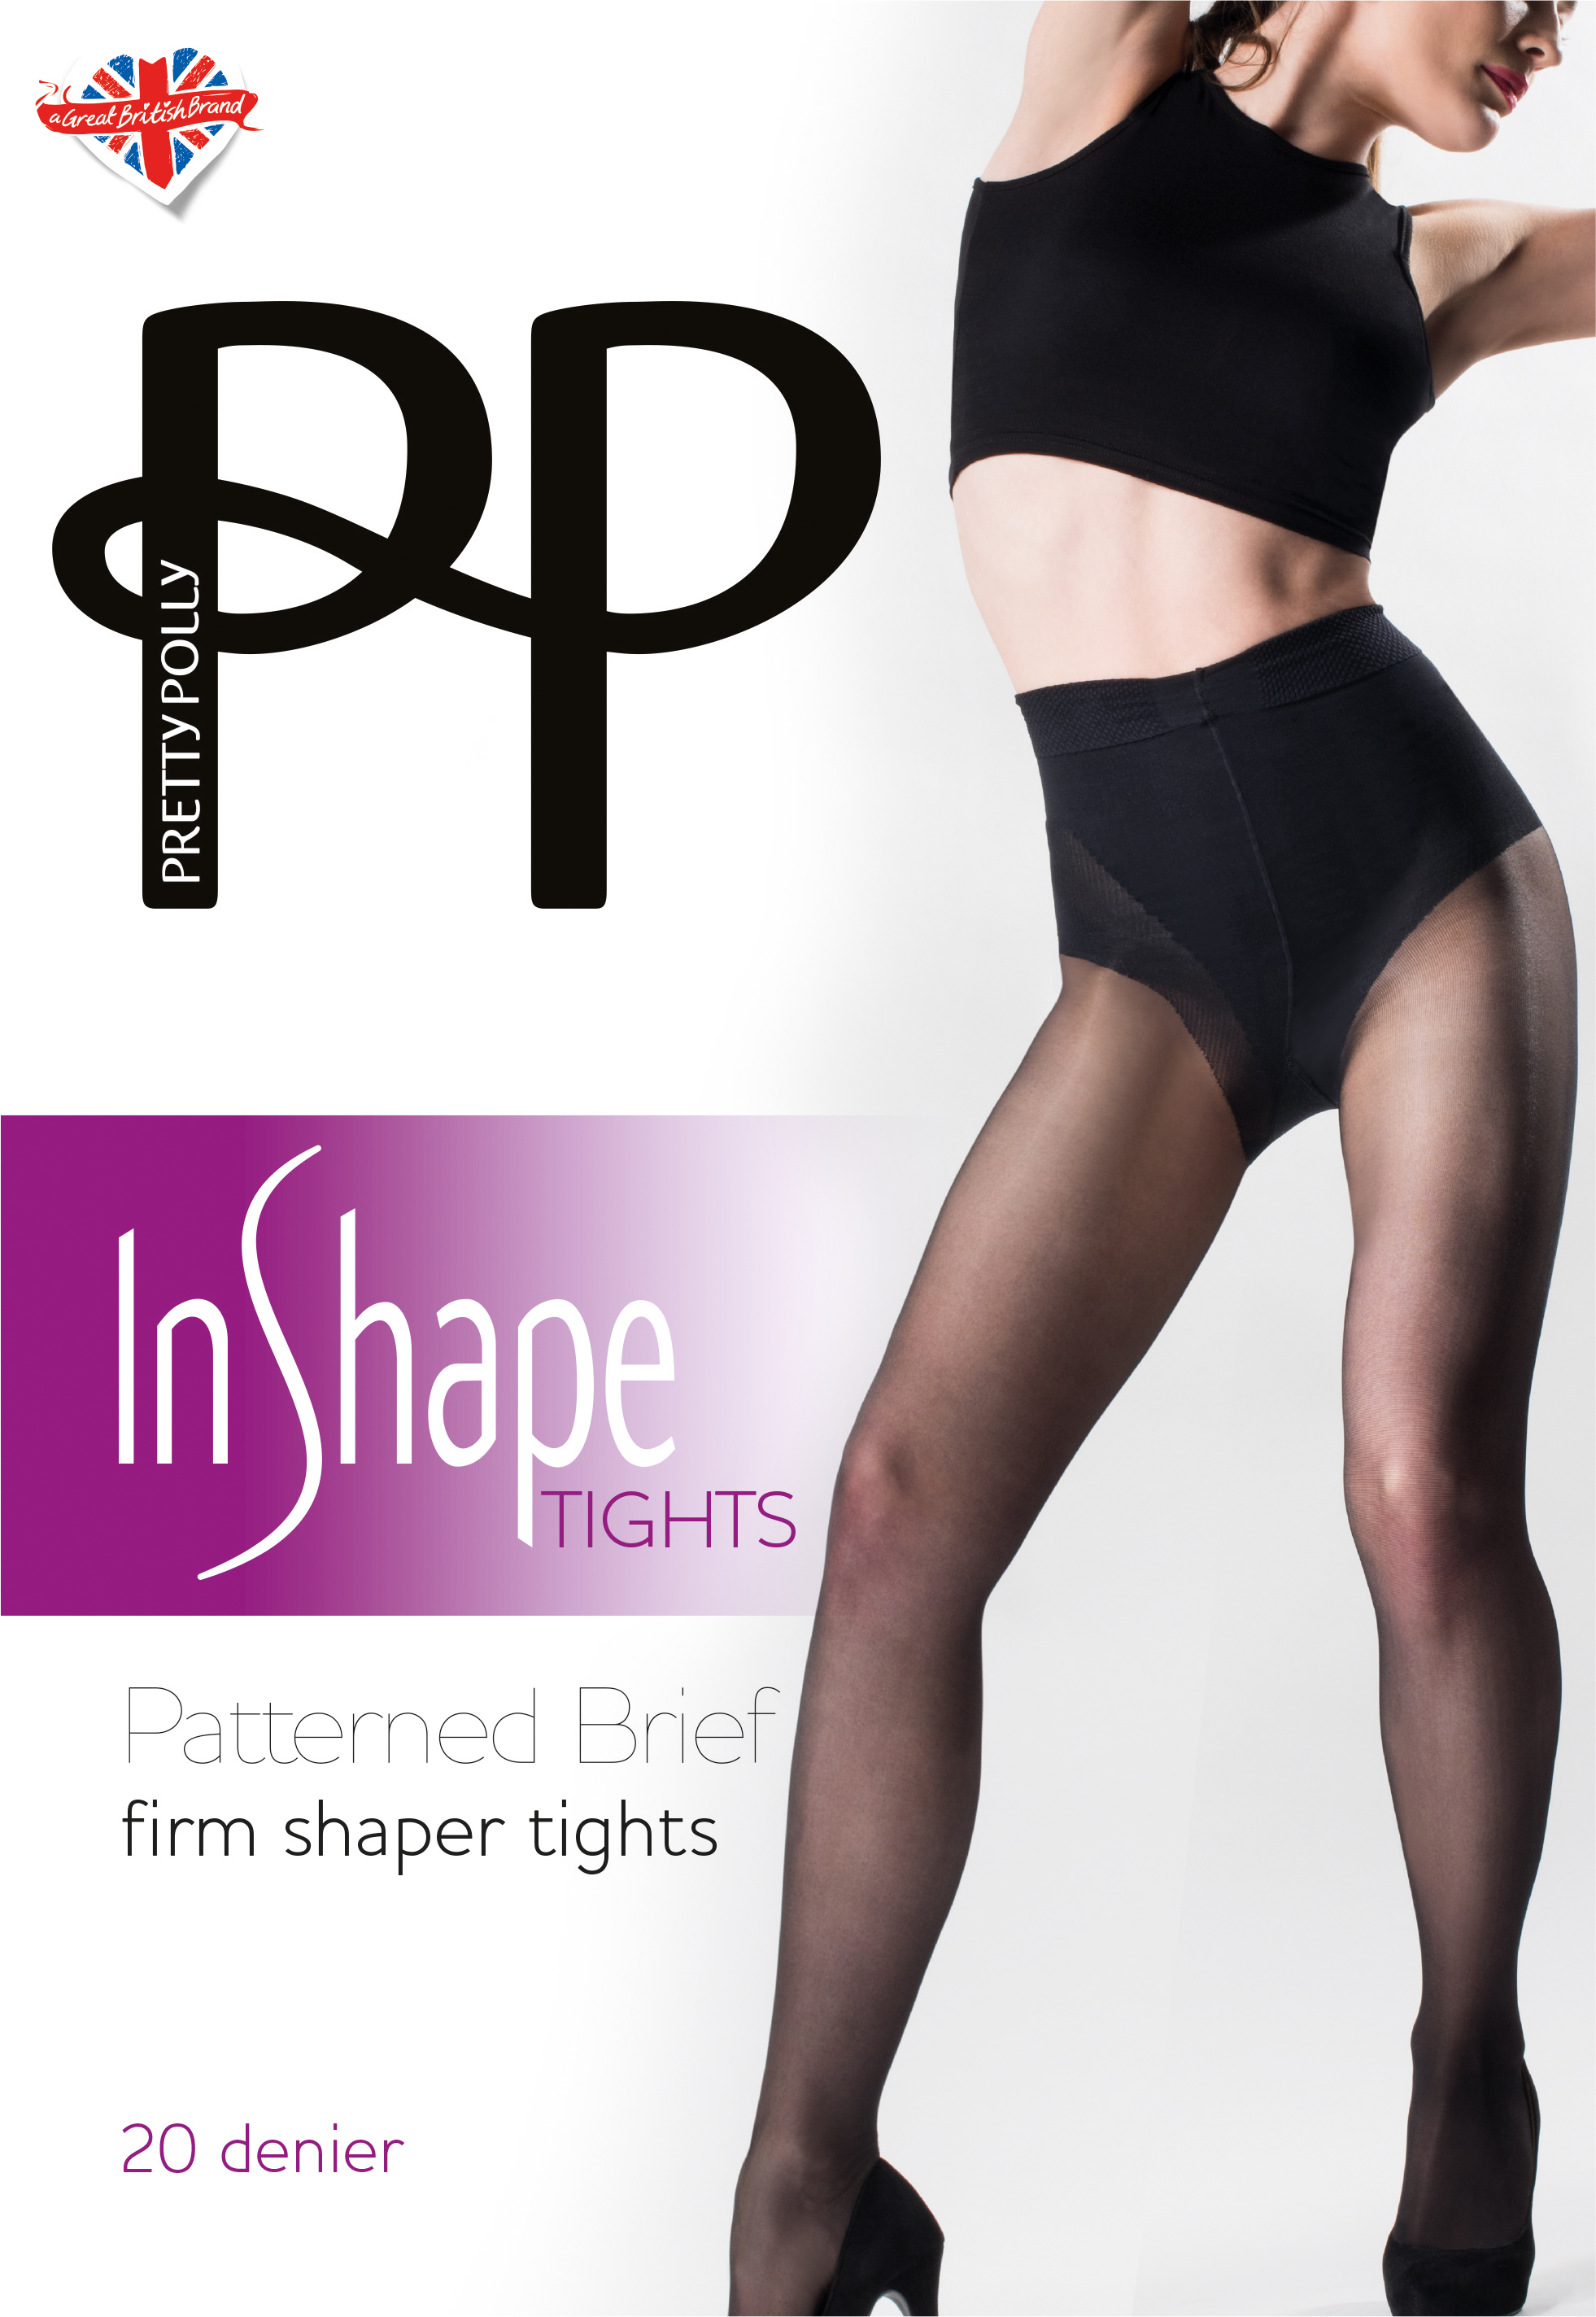 58bc24447 Pretty Polly In Shape Firm Shaper Tights Patterned Brief 20 Denier ...